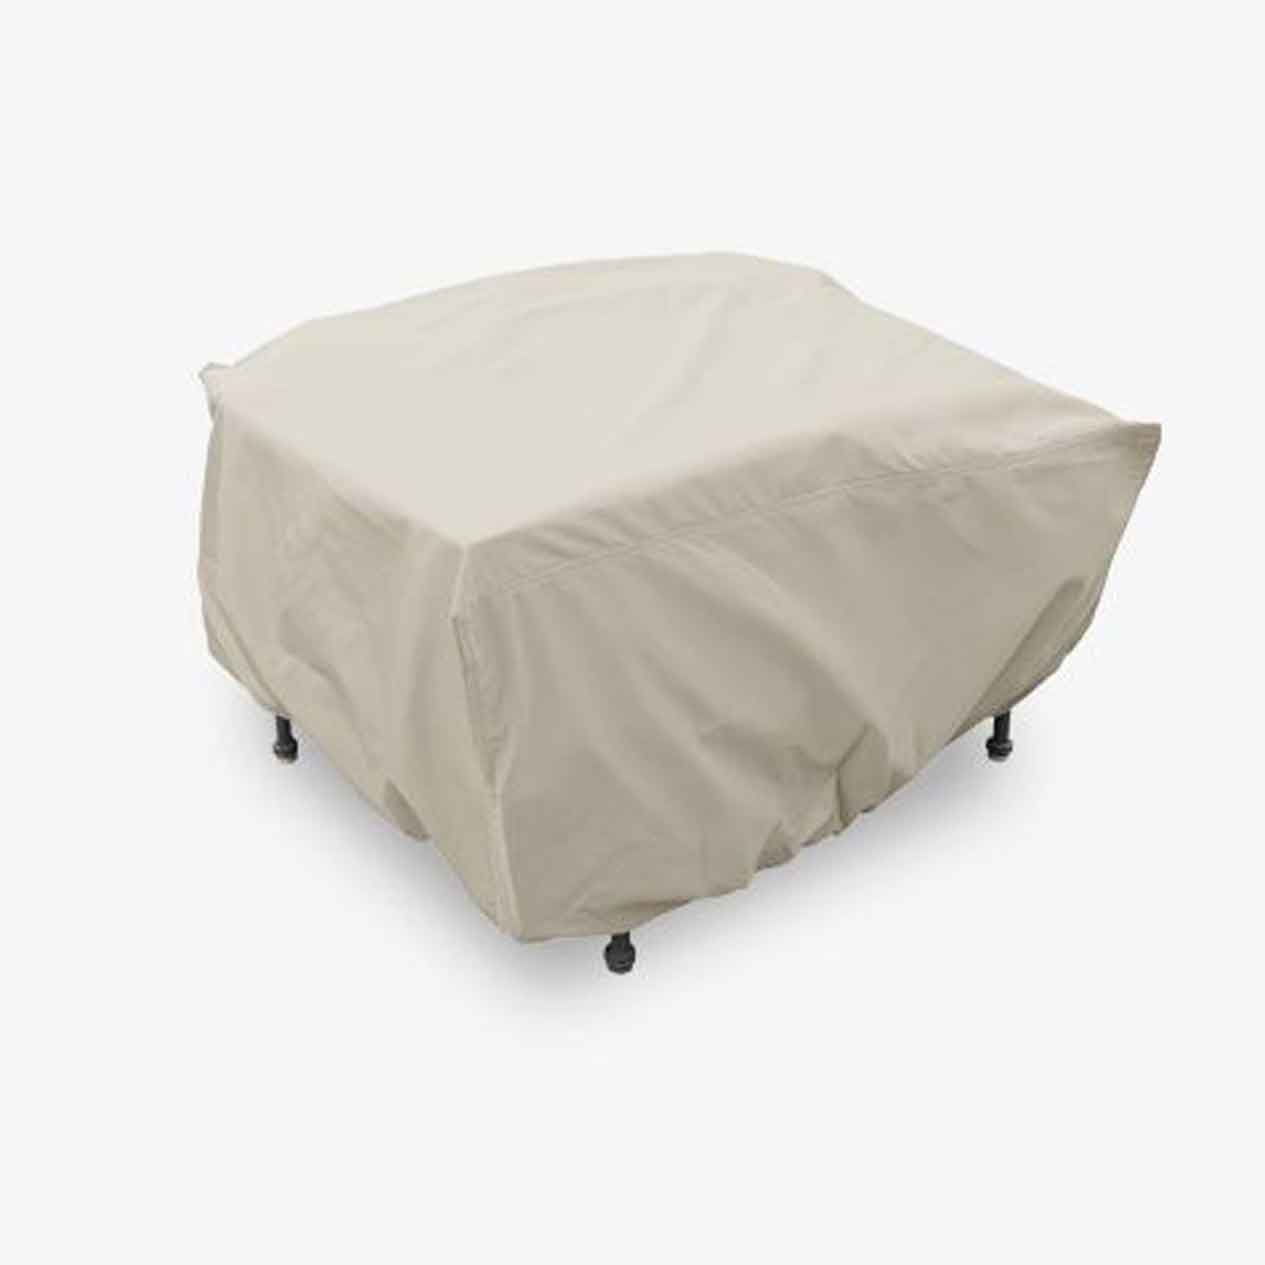 Small Fire Pit, Table, Ottoman Cover